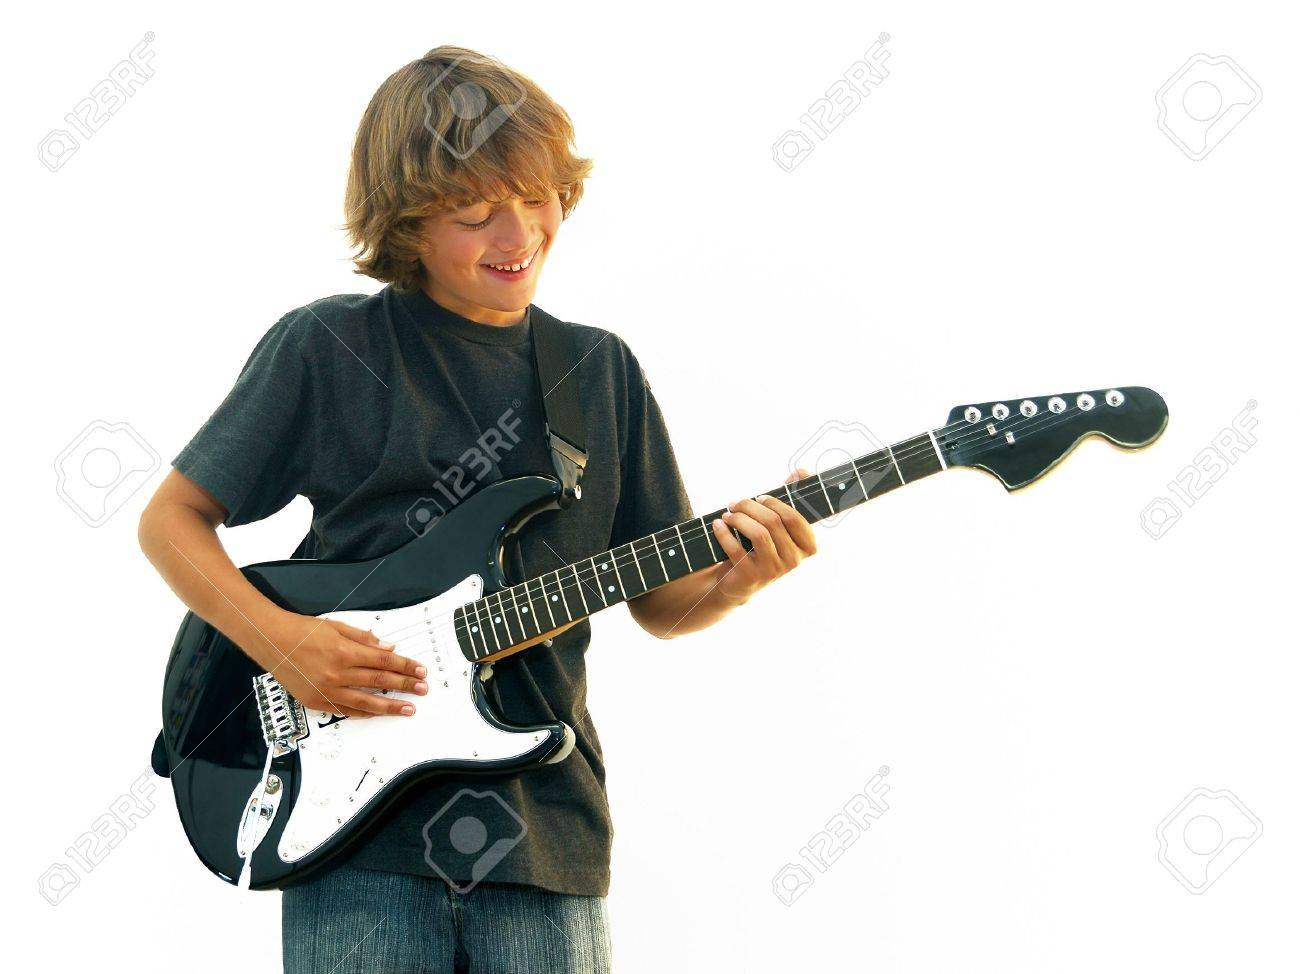 Smiling teen boy playing electric guitar isolated over white. Stock Photo - 4754581